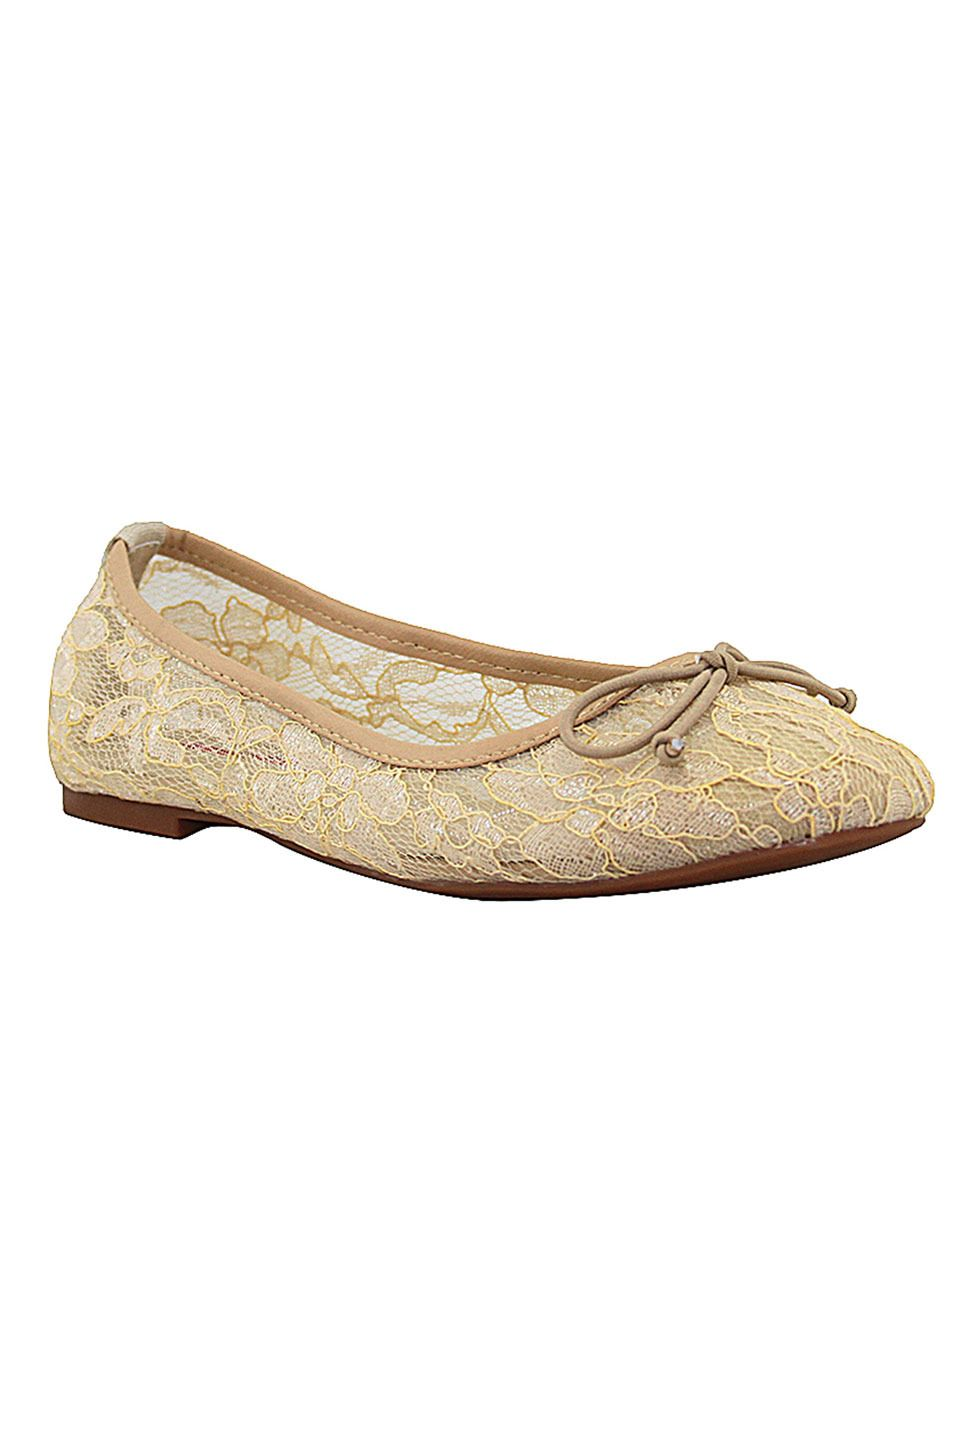 c label Lora 7E Ballet Lace Flats in Cream - Beyond the Rack